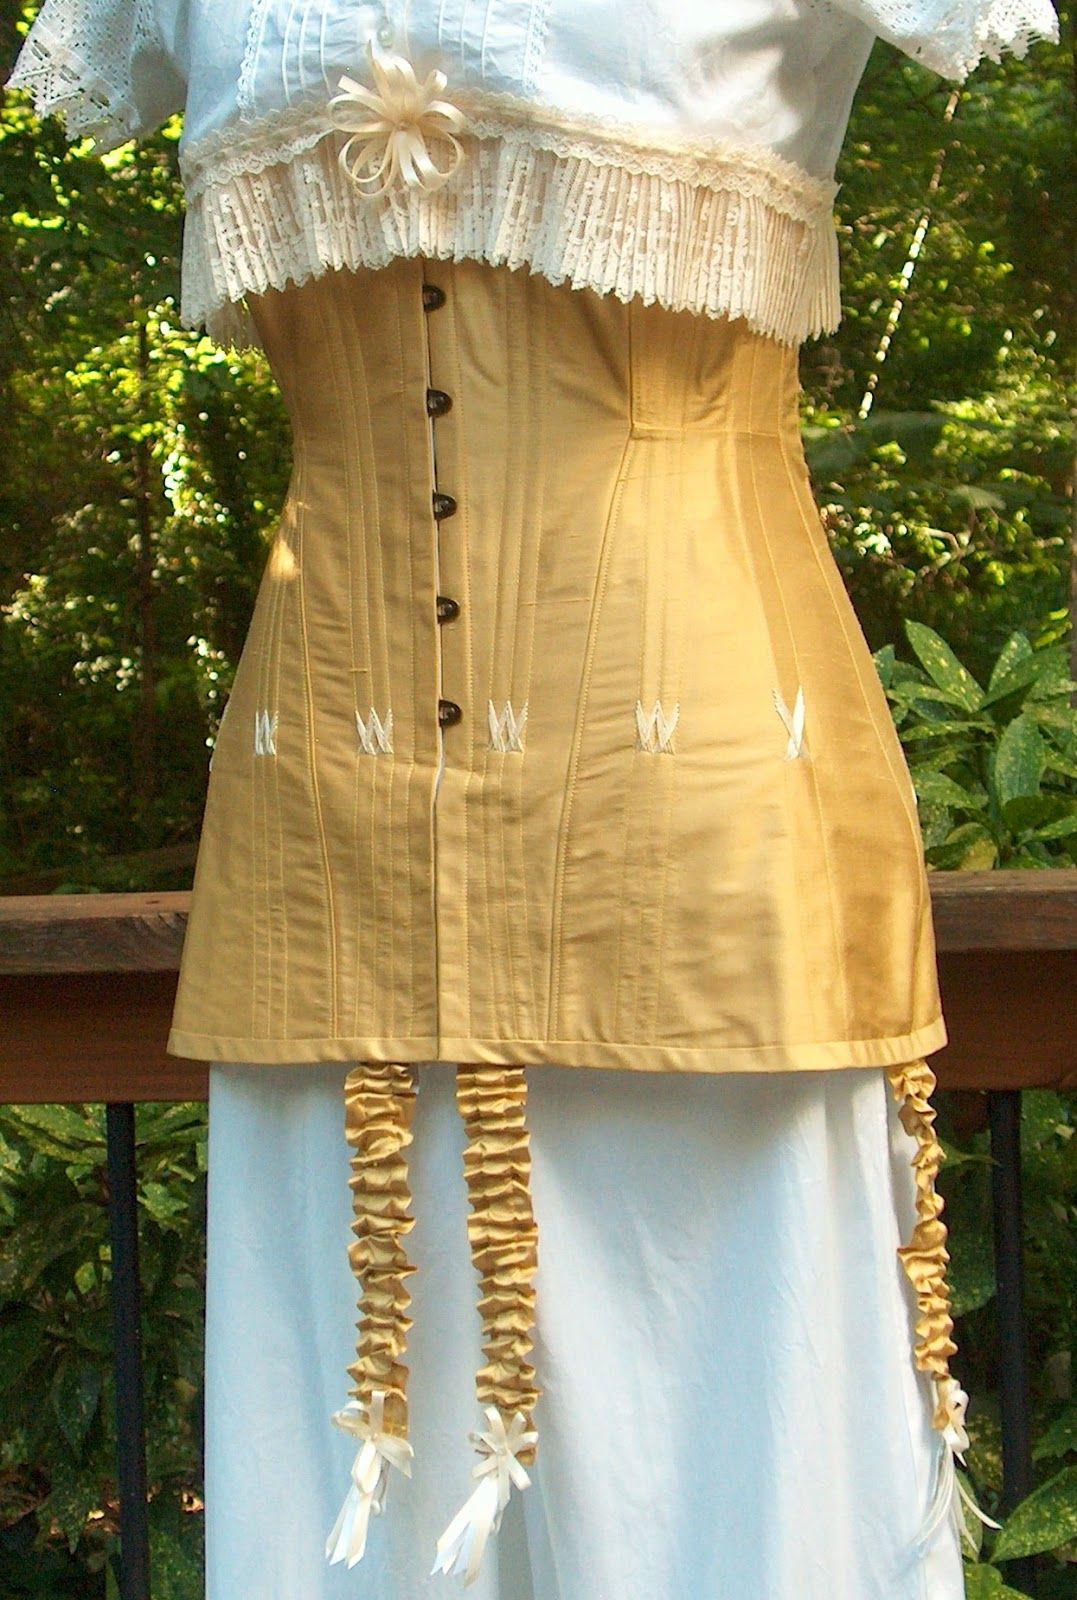 1910 corset by Jeanette Muray